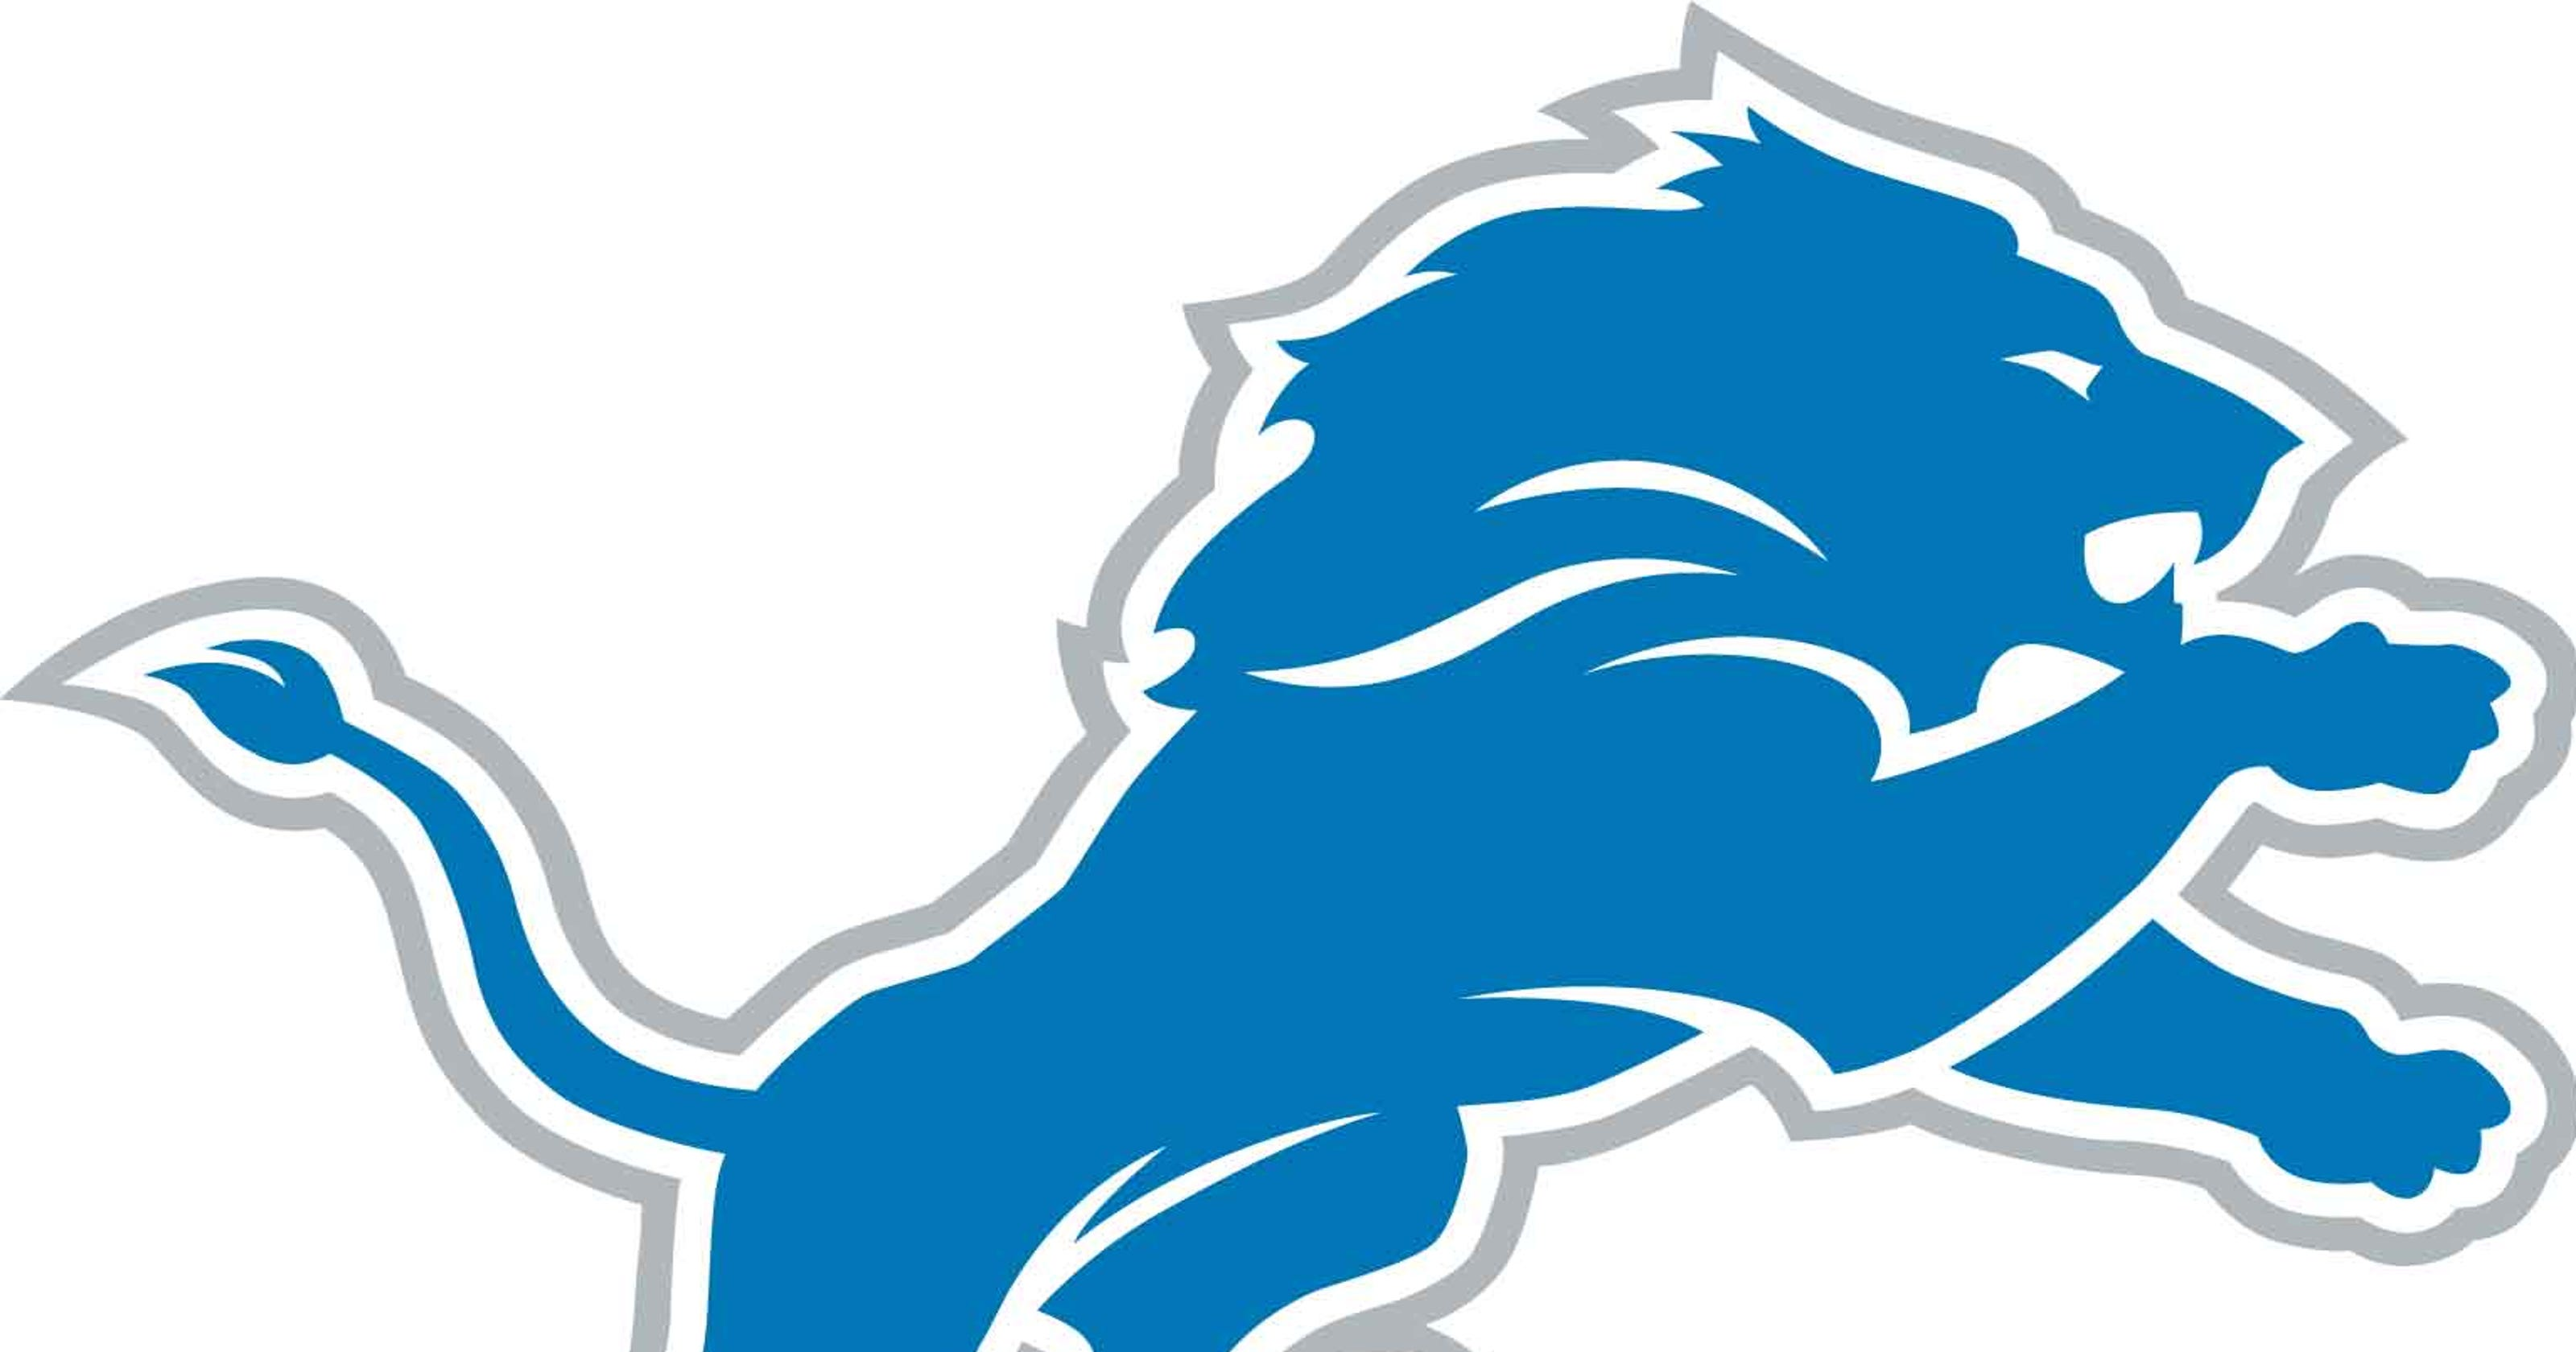 Detroit Lions tweak logo and font, will alter uniforms, too